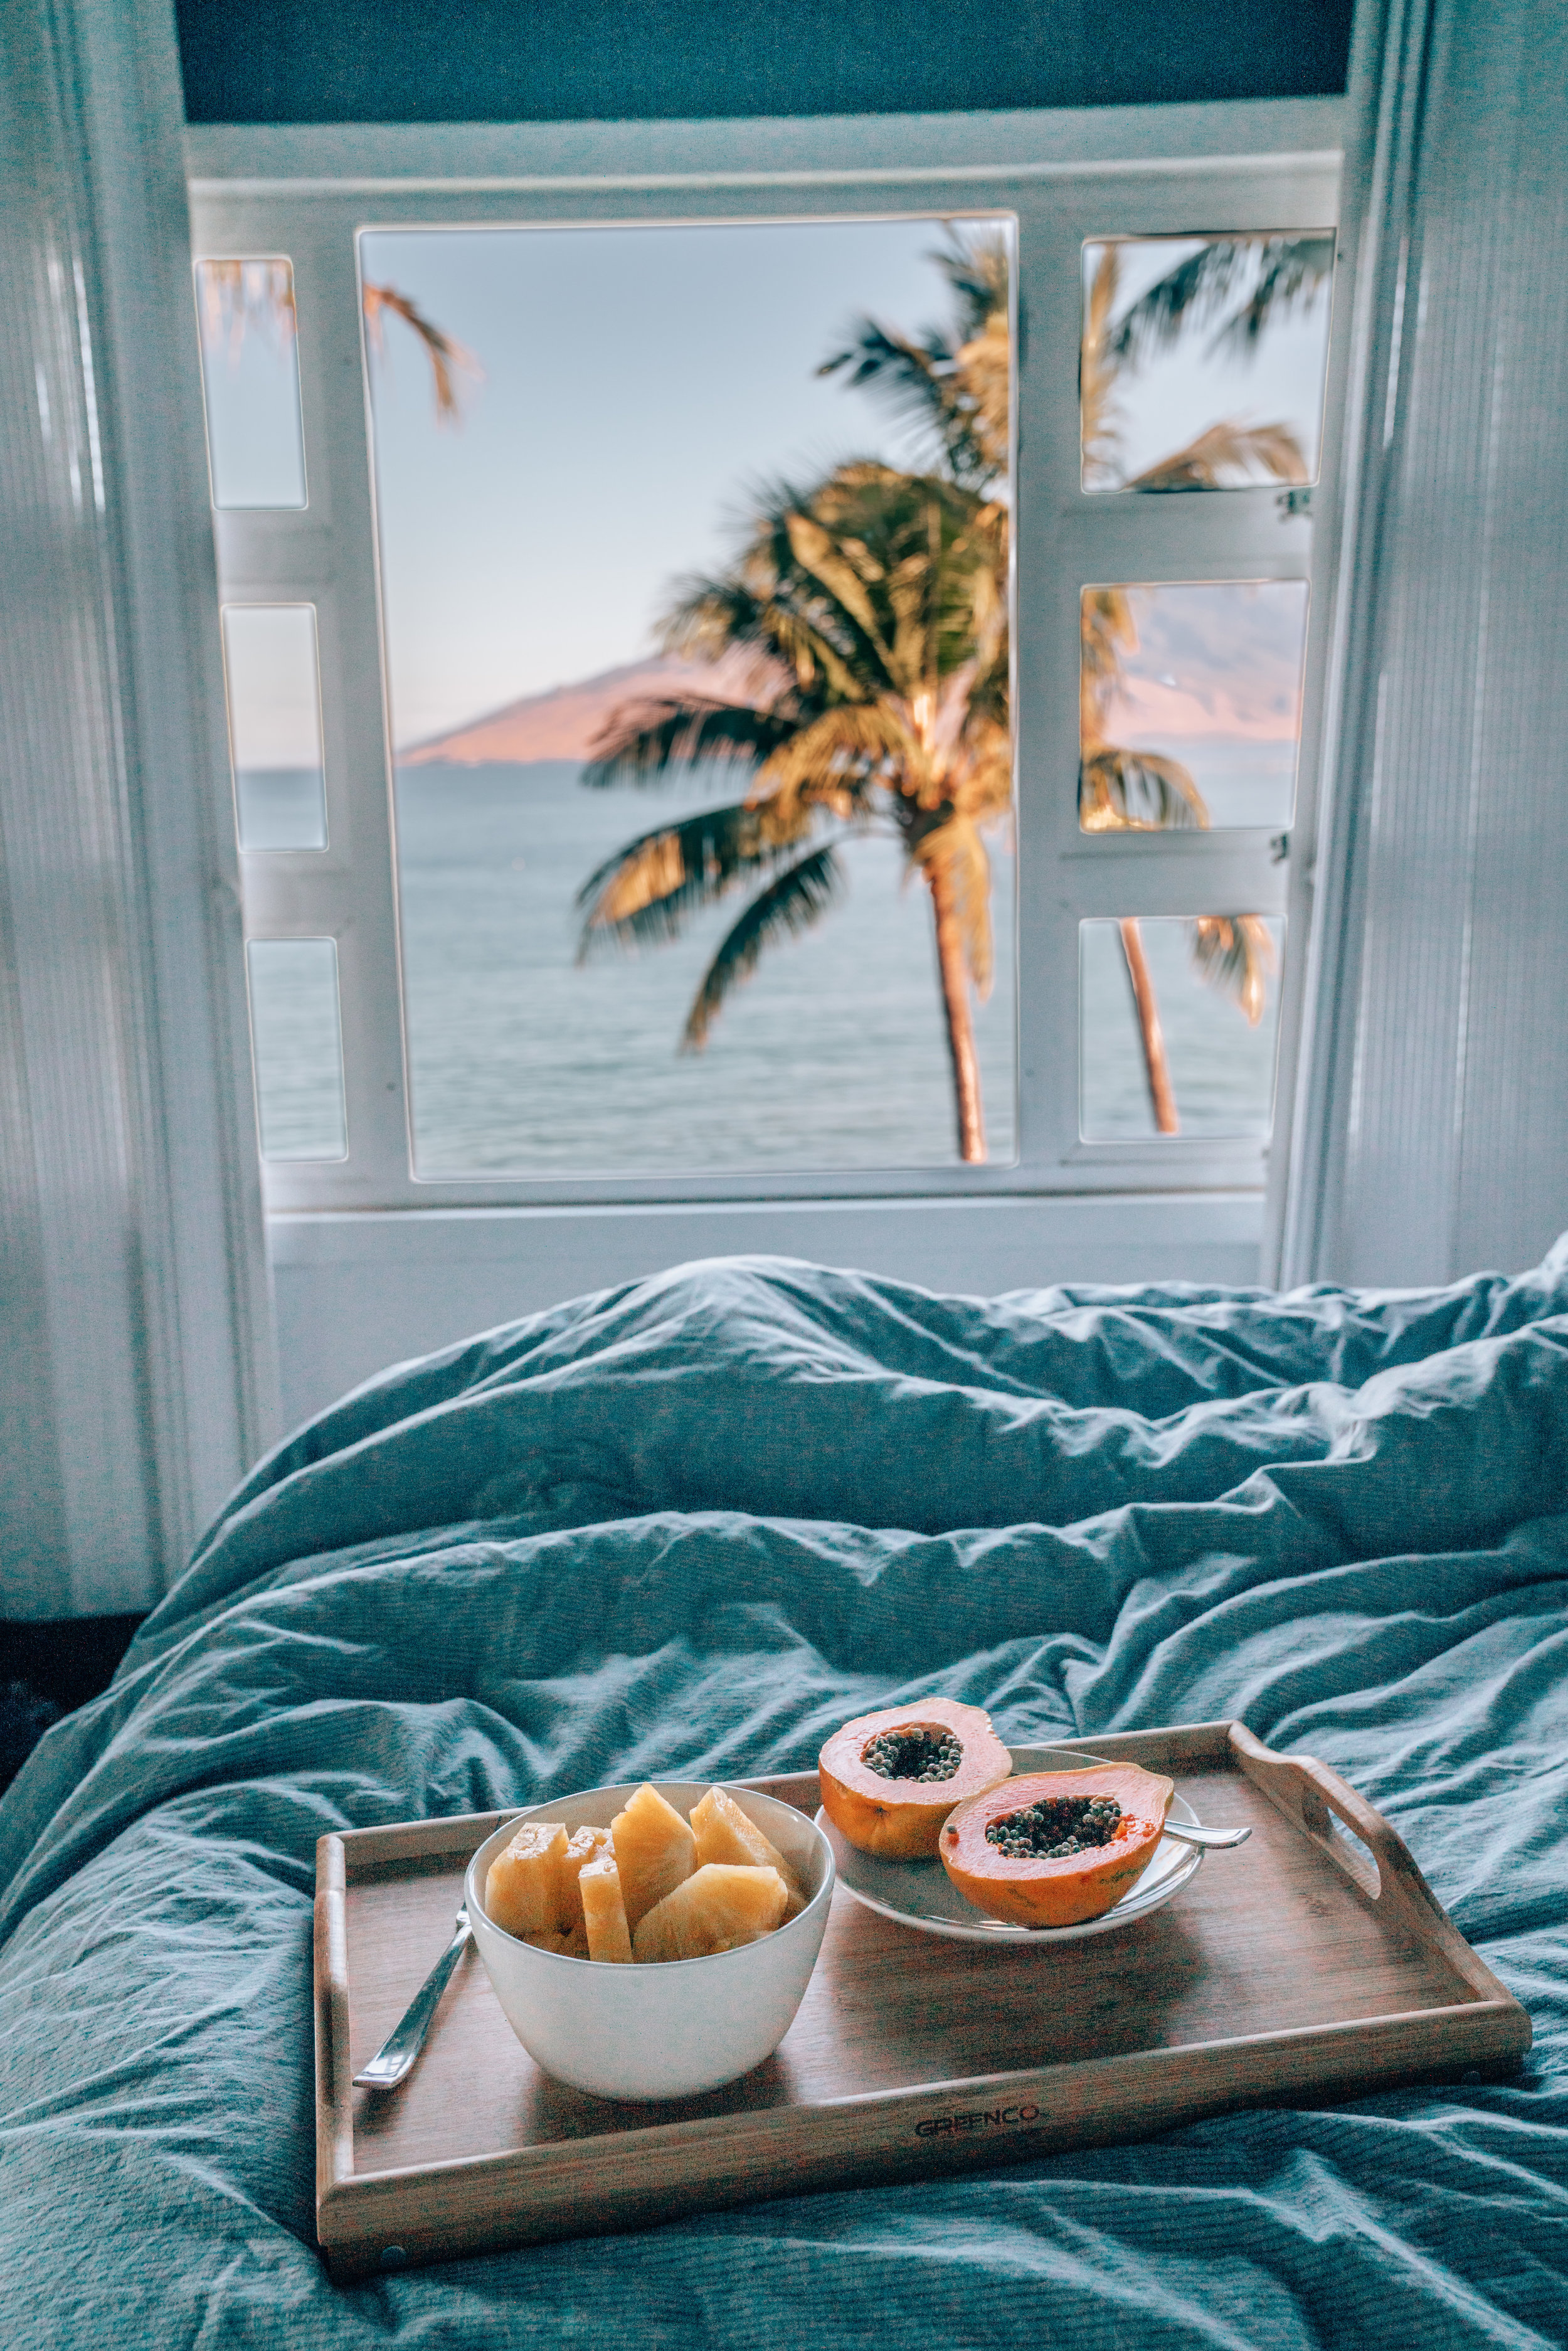 Breakfast in Bed at Maui Beachside